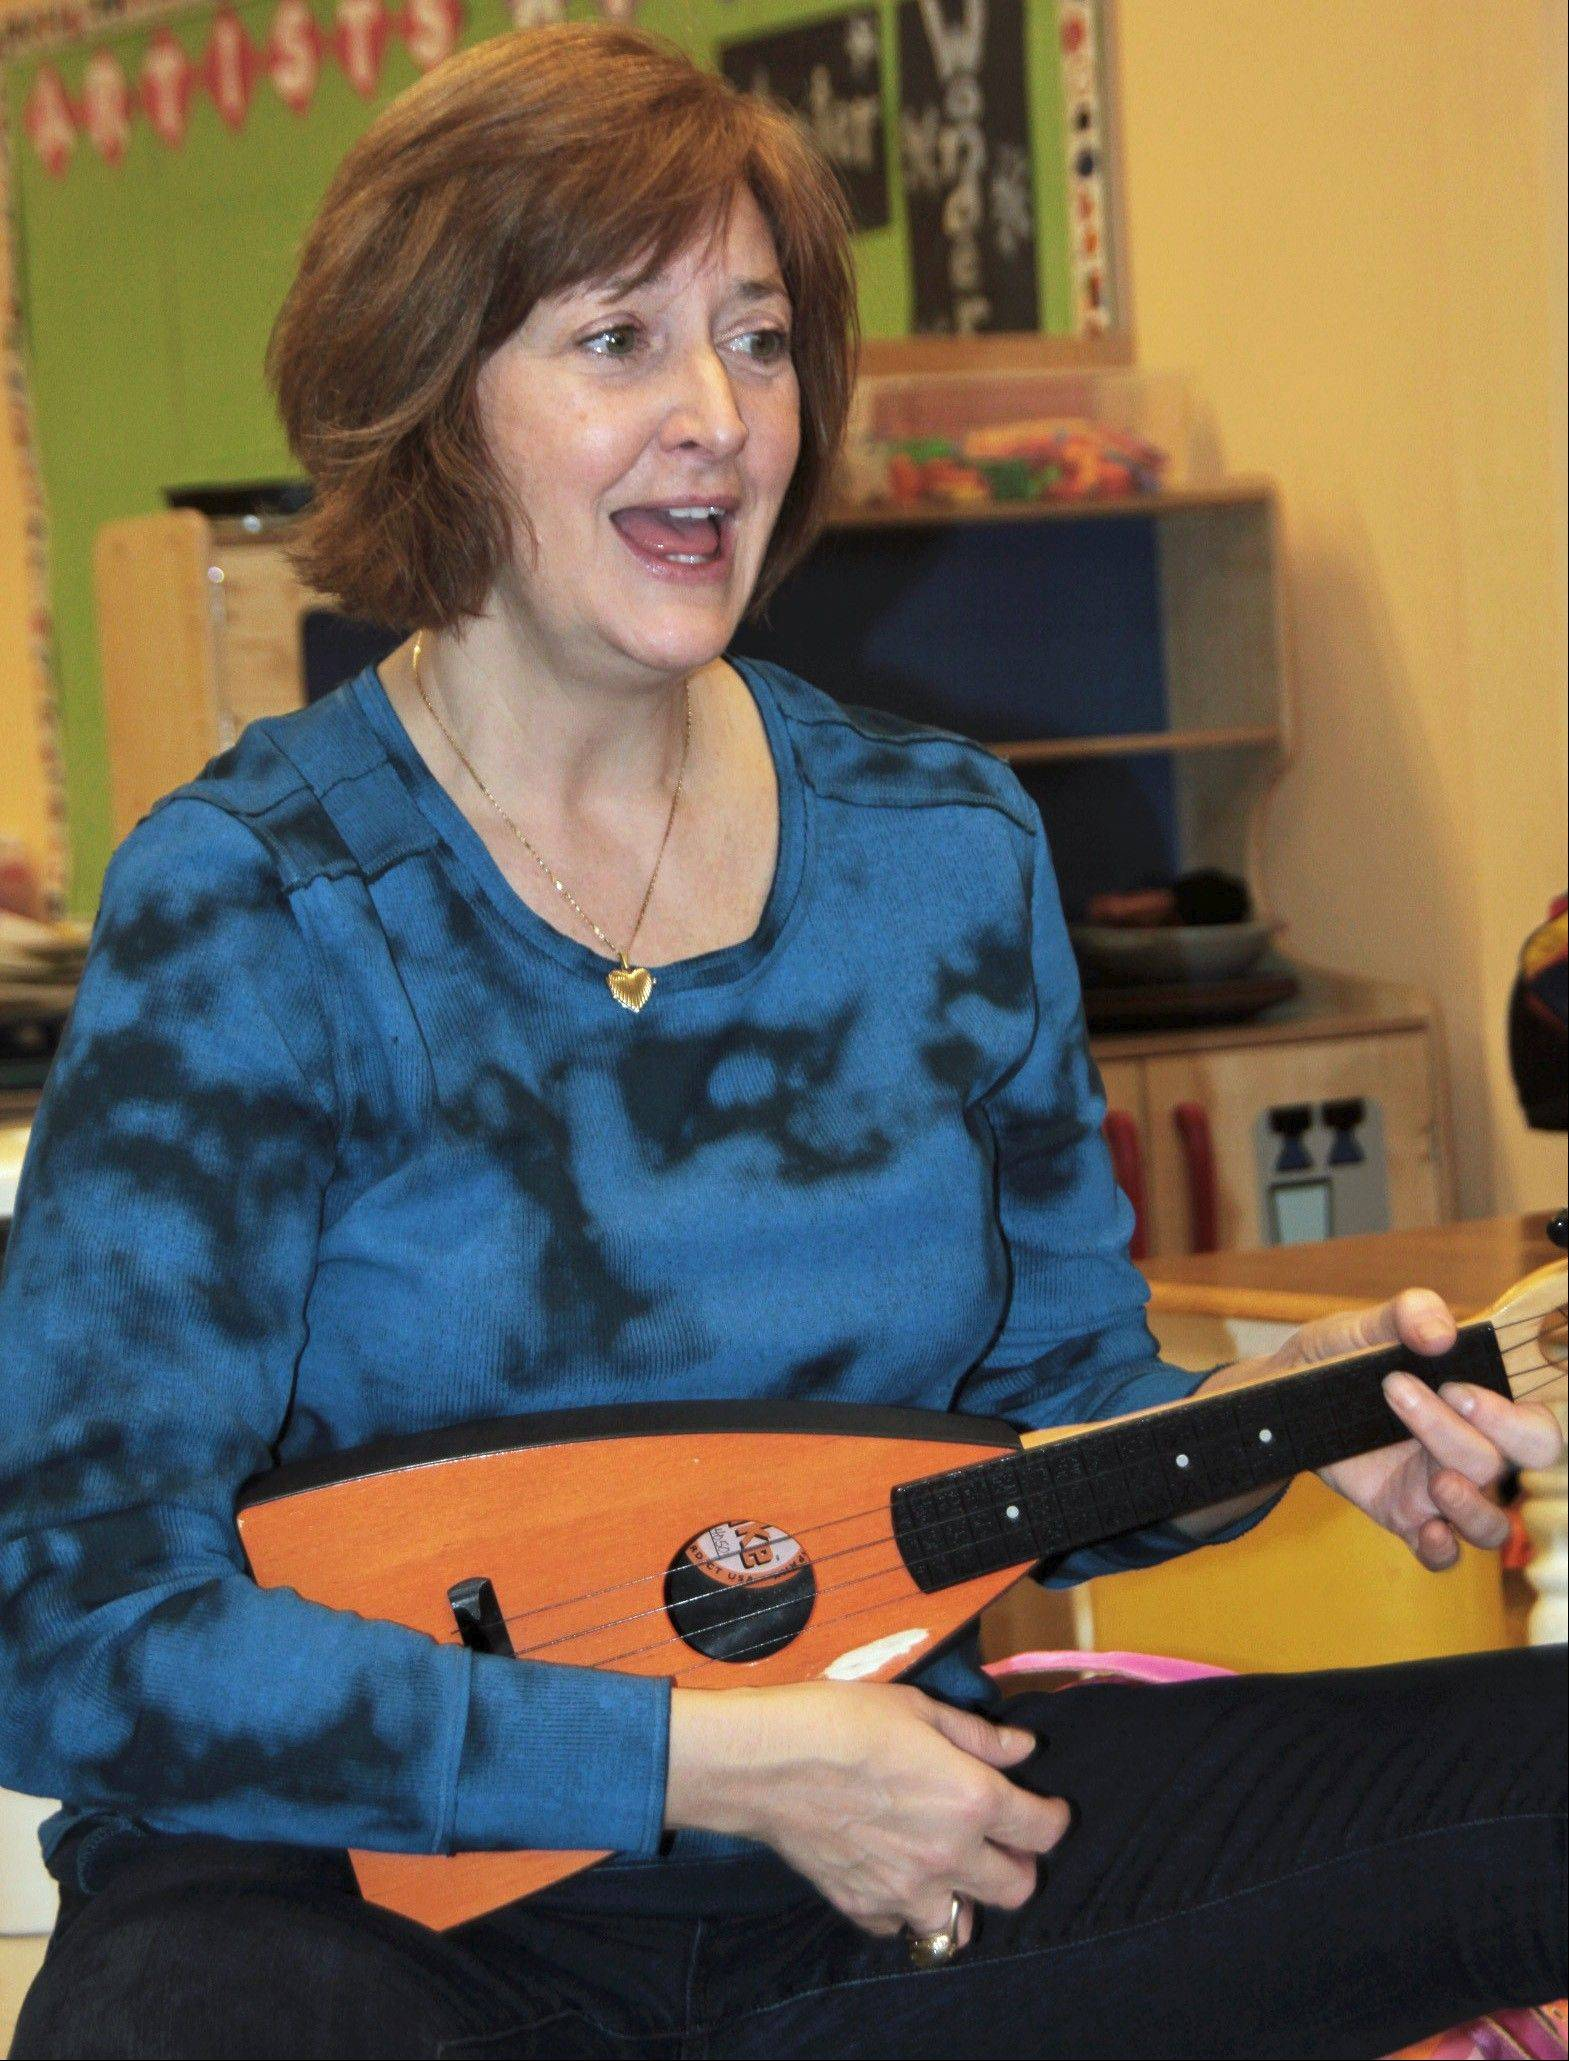 Award-winning children's music composer and performer Susan Salidor presents ans interative family concert at the Alfred Rubin Riverwalk Community Center in Naperville.